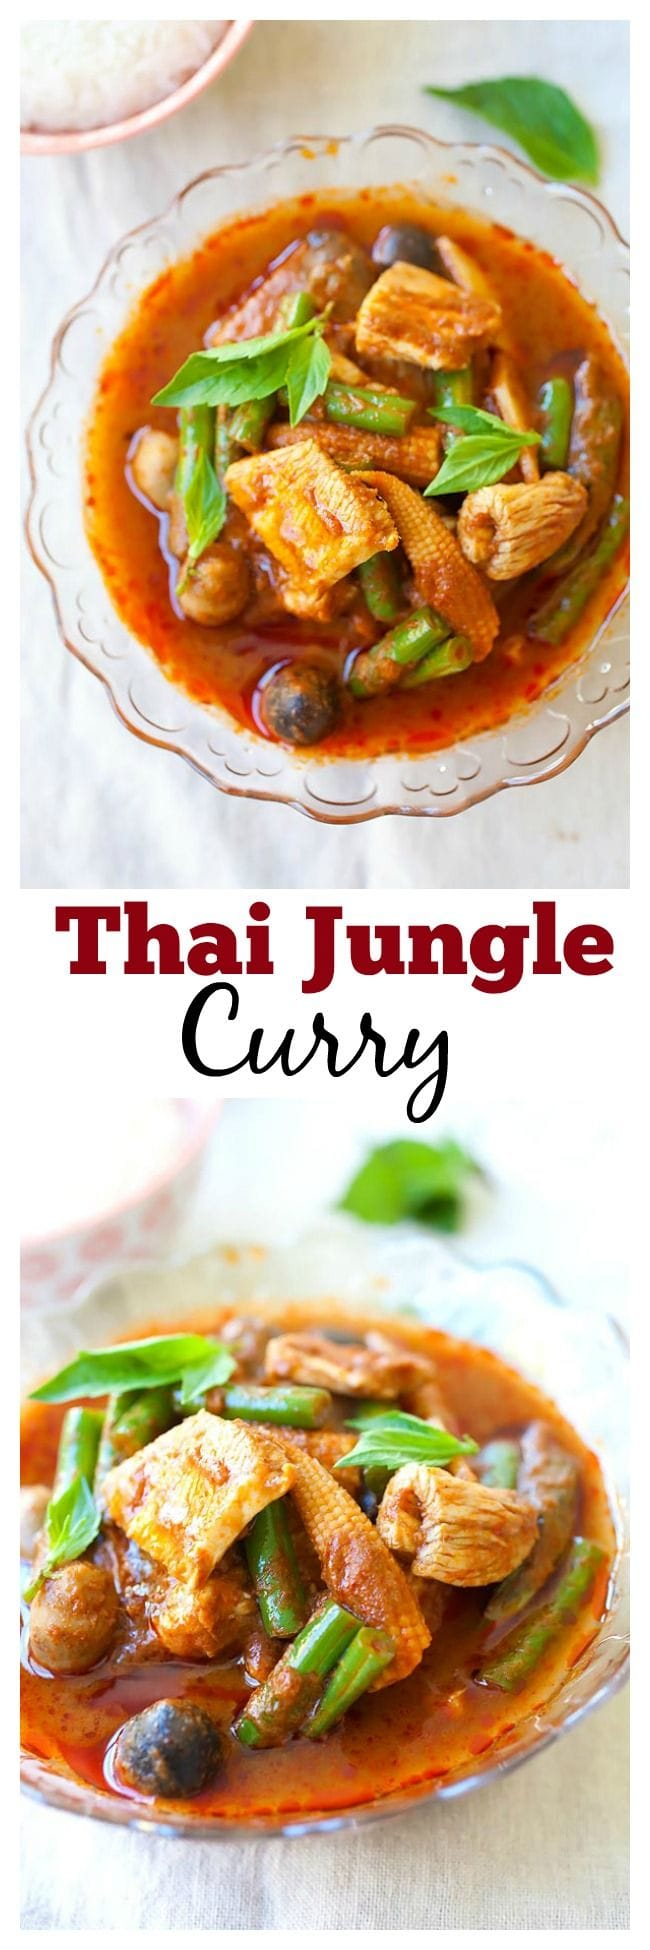 Jungle curry is a popular Thai curry. Jungle curry is spicy, with no coconut milk. You can make pork or chicken jungle curry with this easy recipe. | rasamalaysia.com